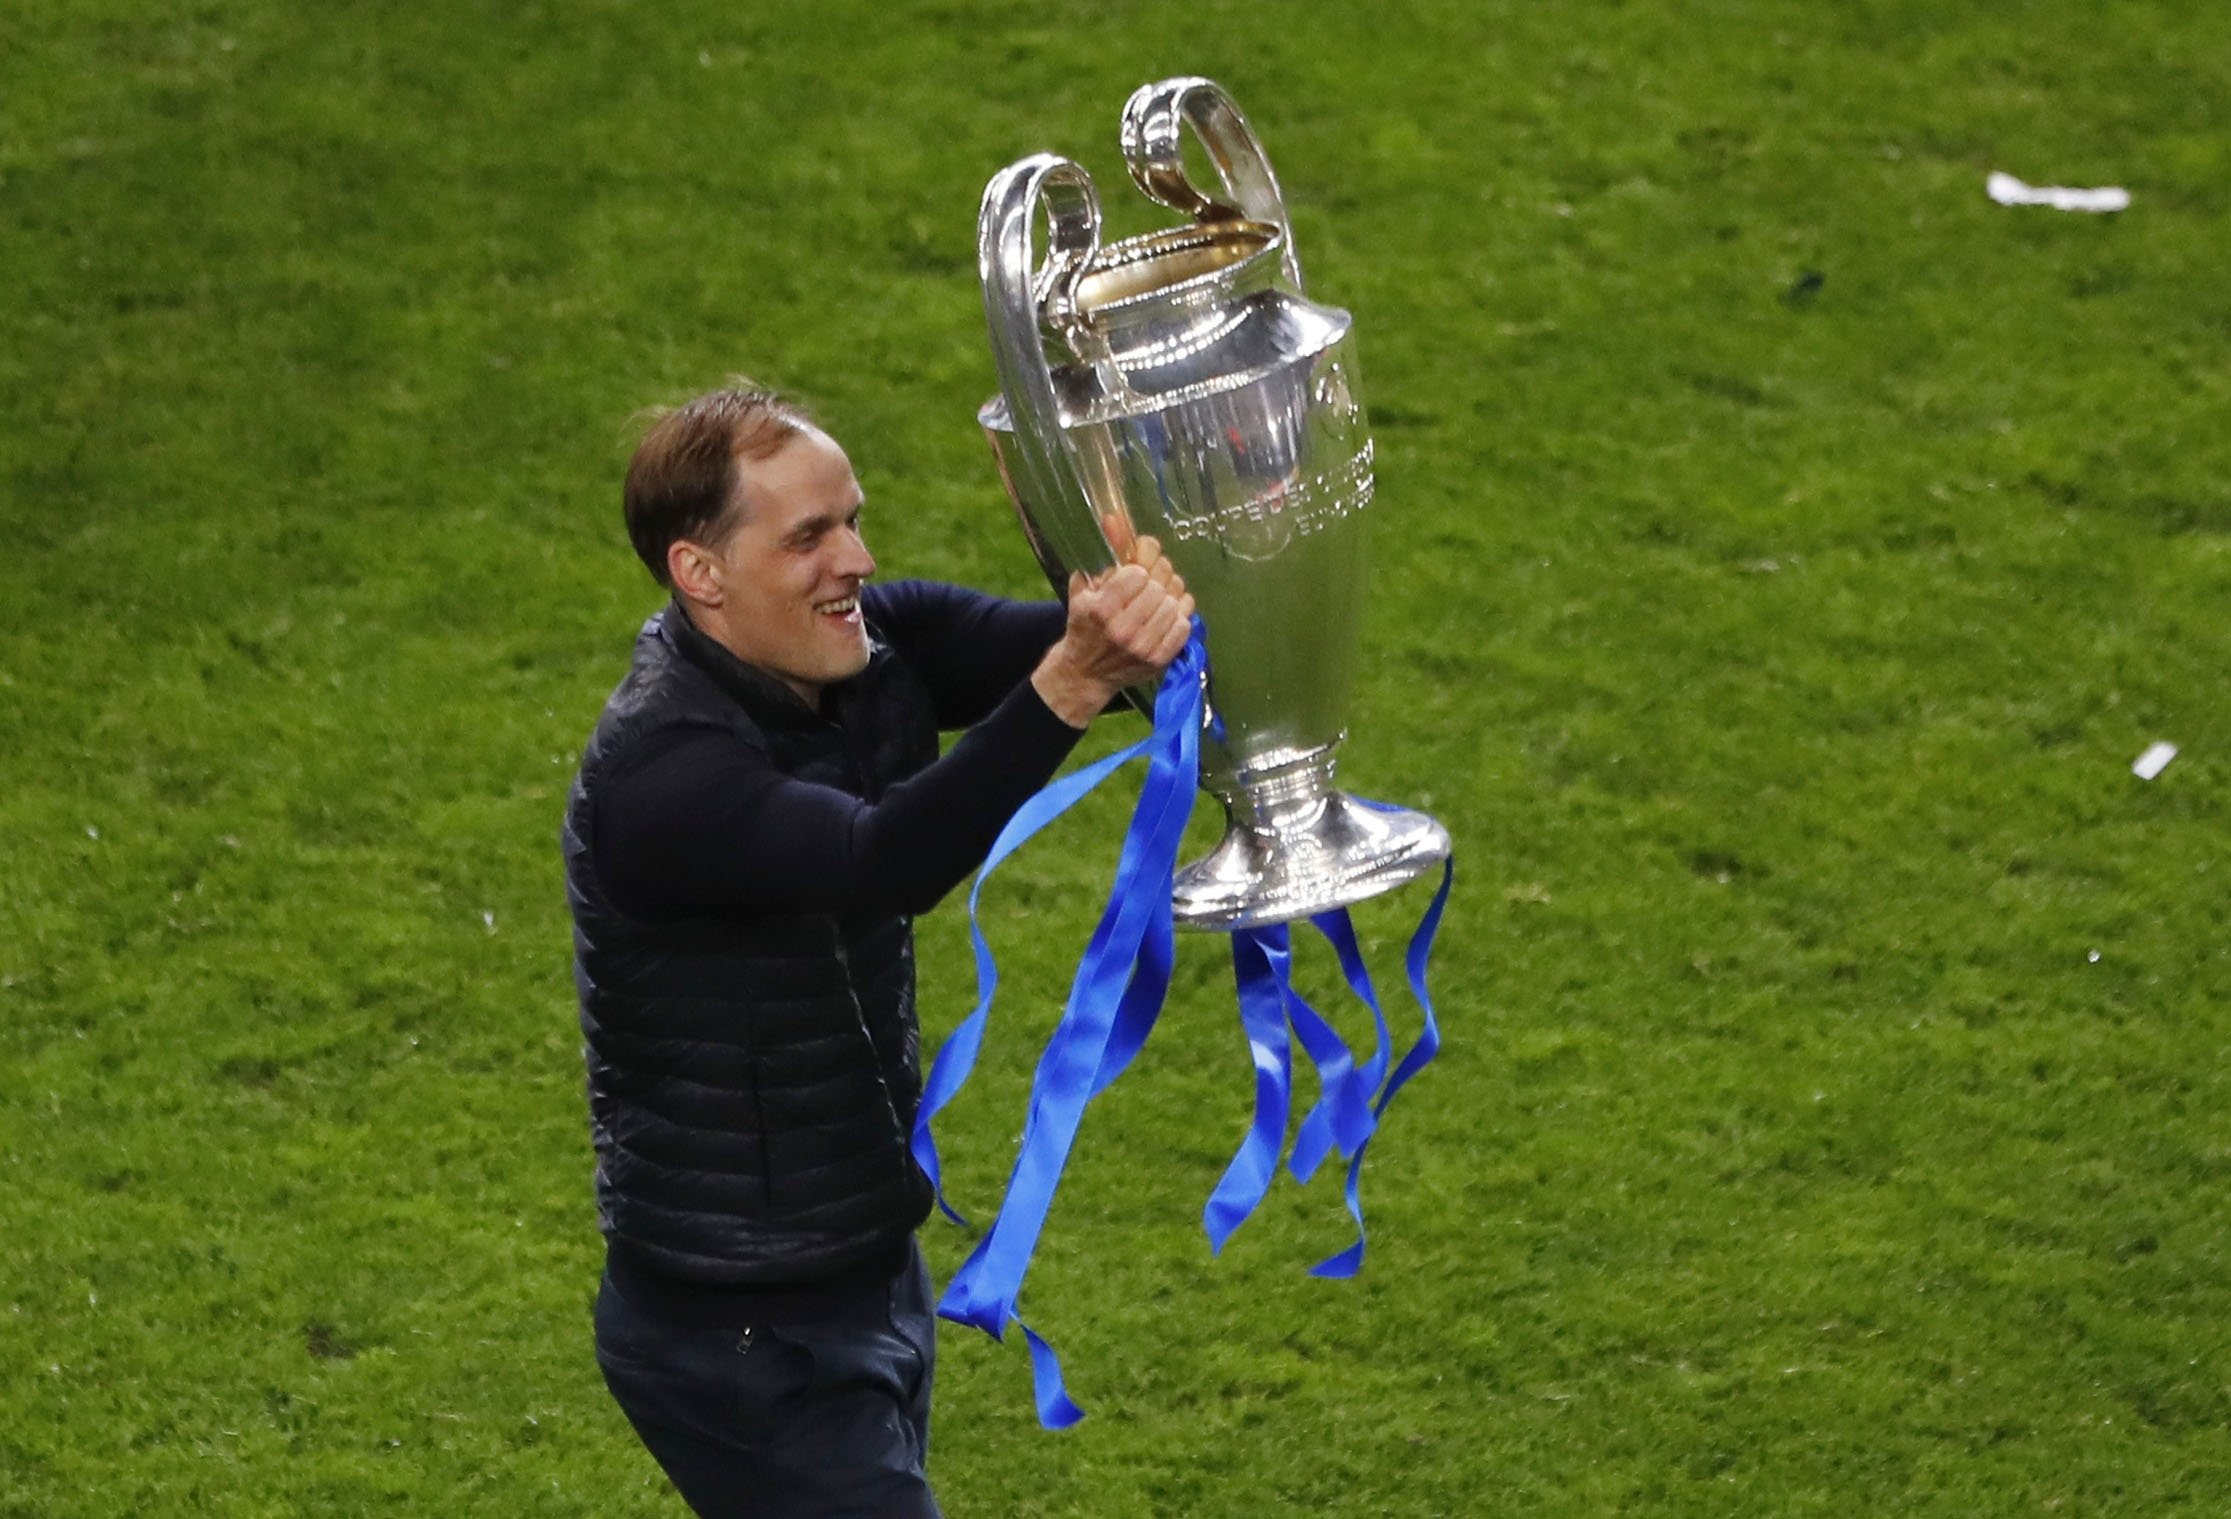 Tuchel masterpiece brings glory for Chelsea   Daily Sabah